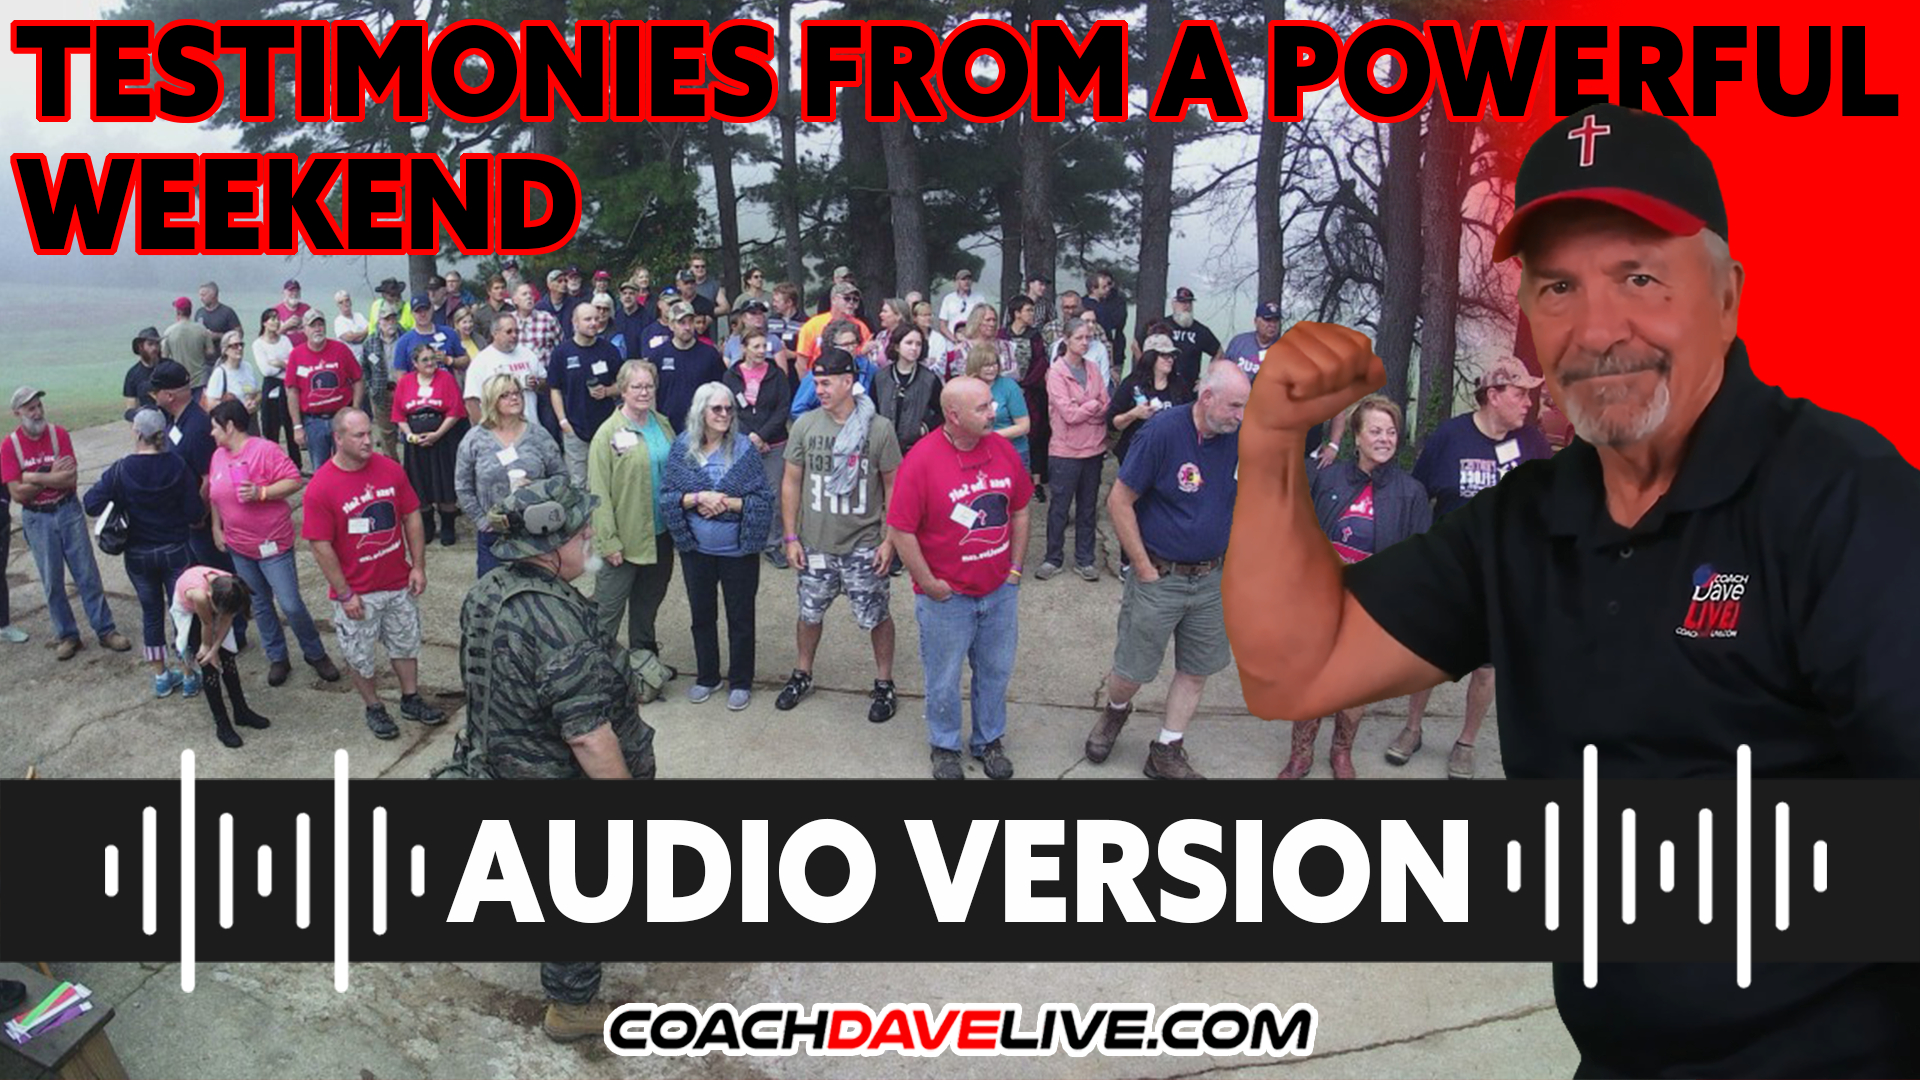 Coach Dave LIVE | 10-11-2021 | TESTIMONIES FROM A POWERFUL WEEKEND - AUDIO ONLY